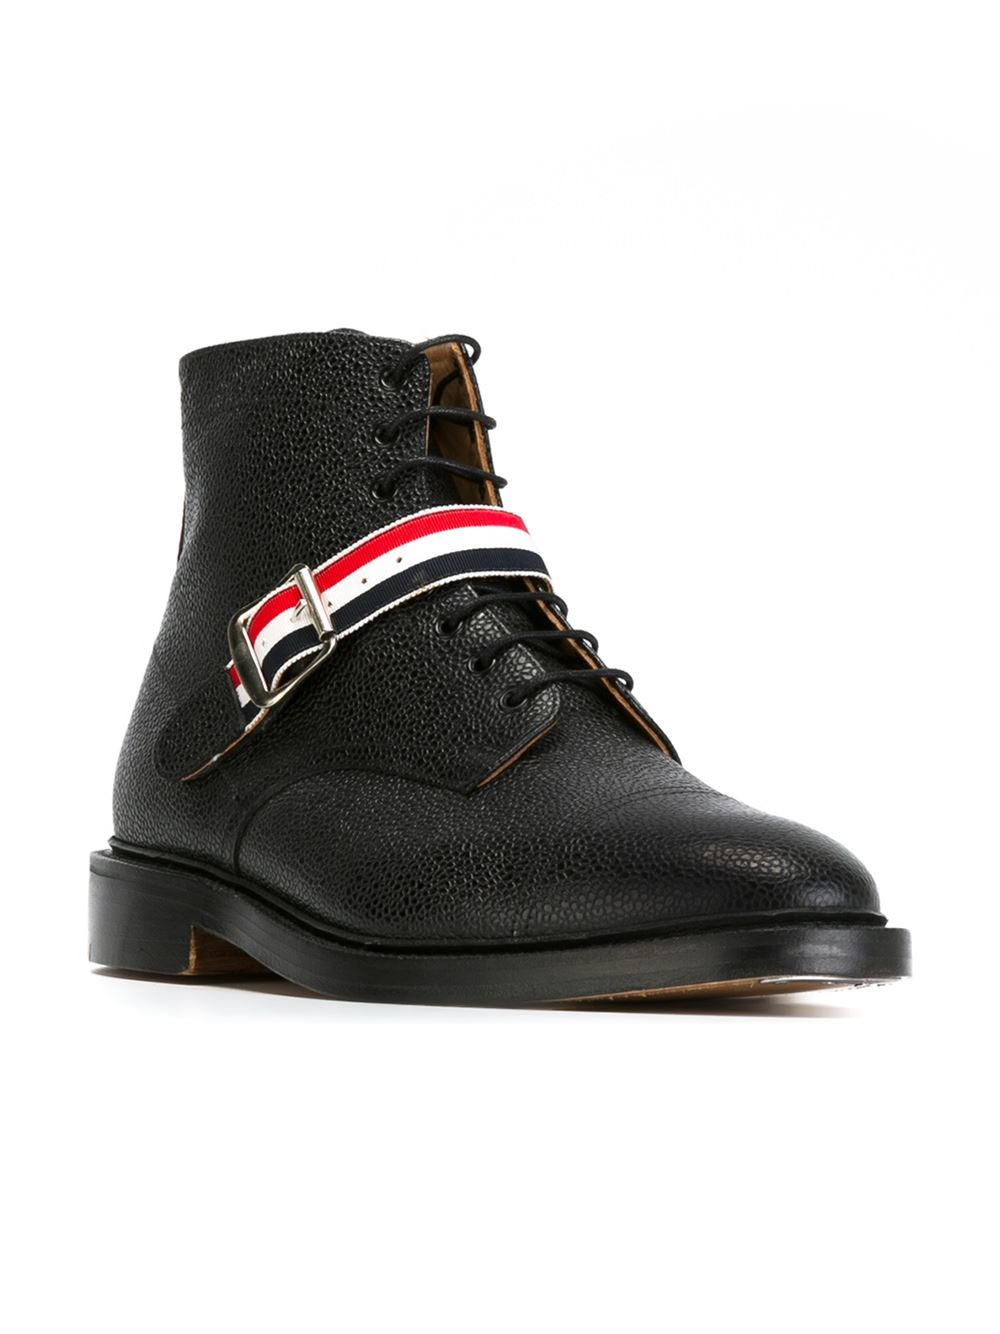 thom browne buckled lace up boots in black for